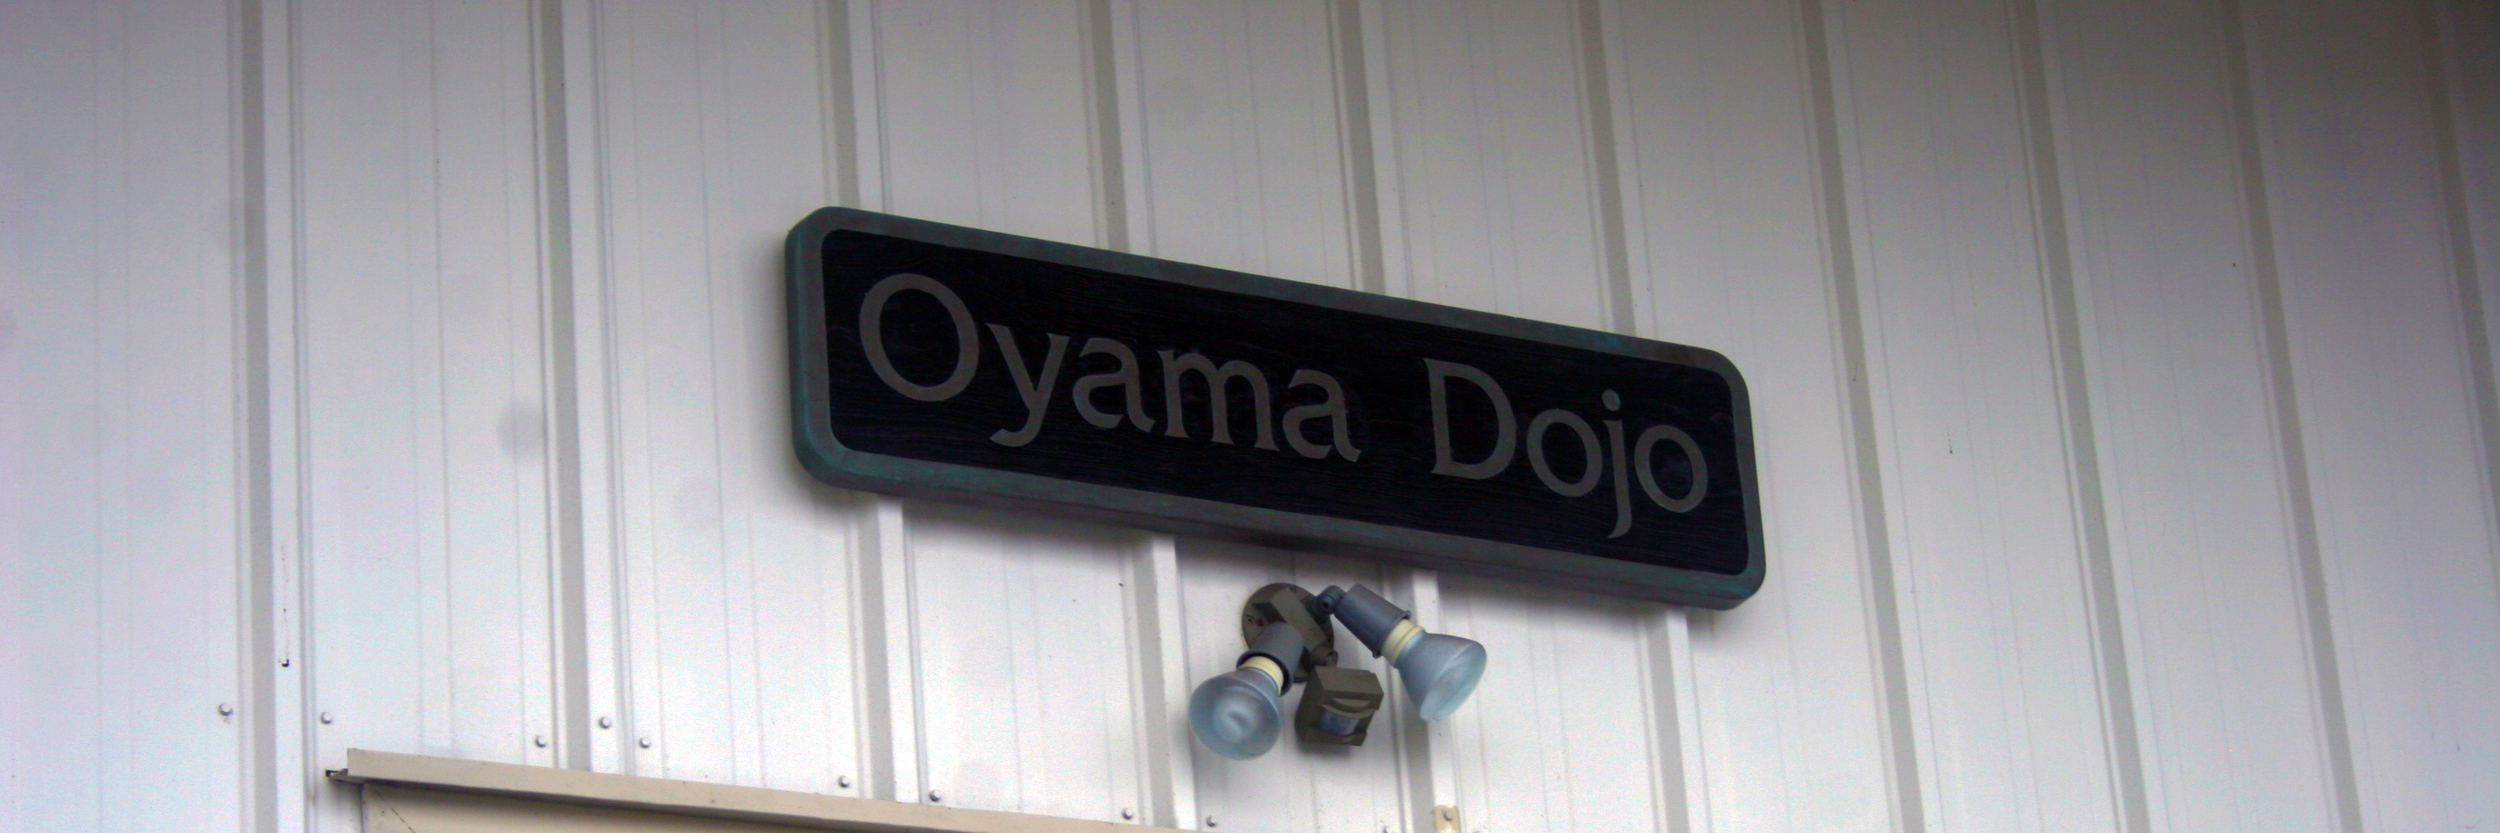 The sign above the Judo hall's entrance.